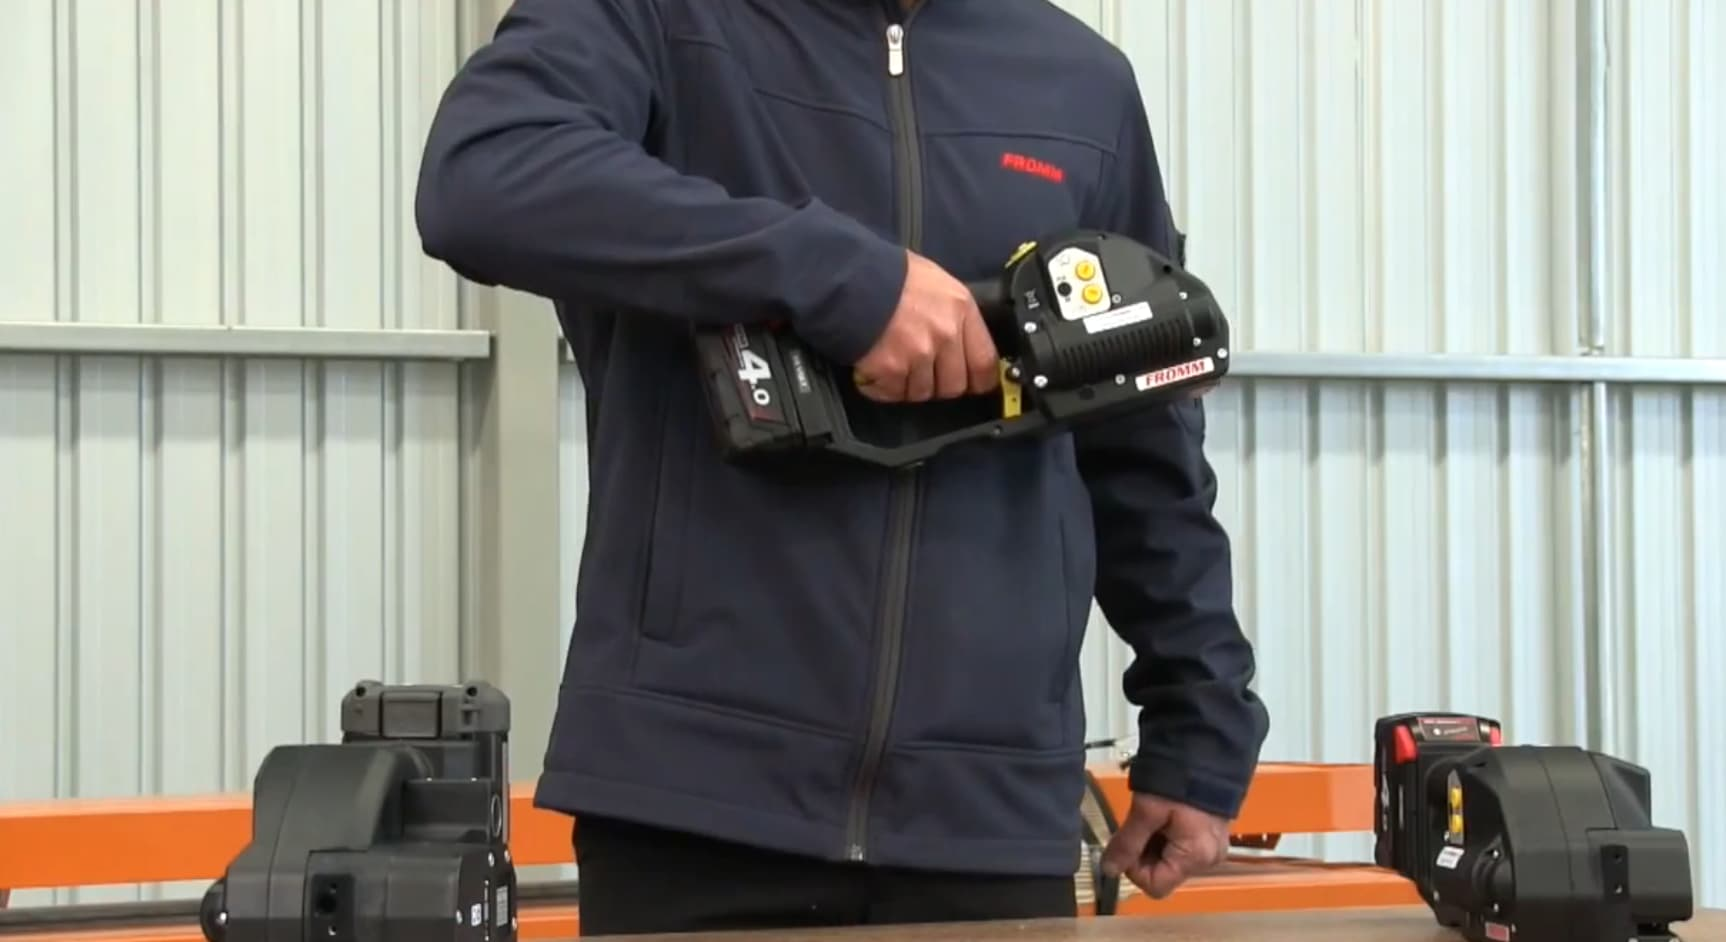 5 Reasons to Choose the Right Tool compressed